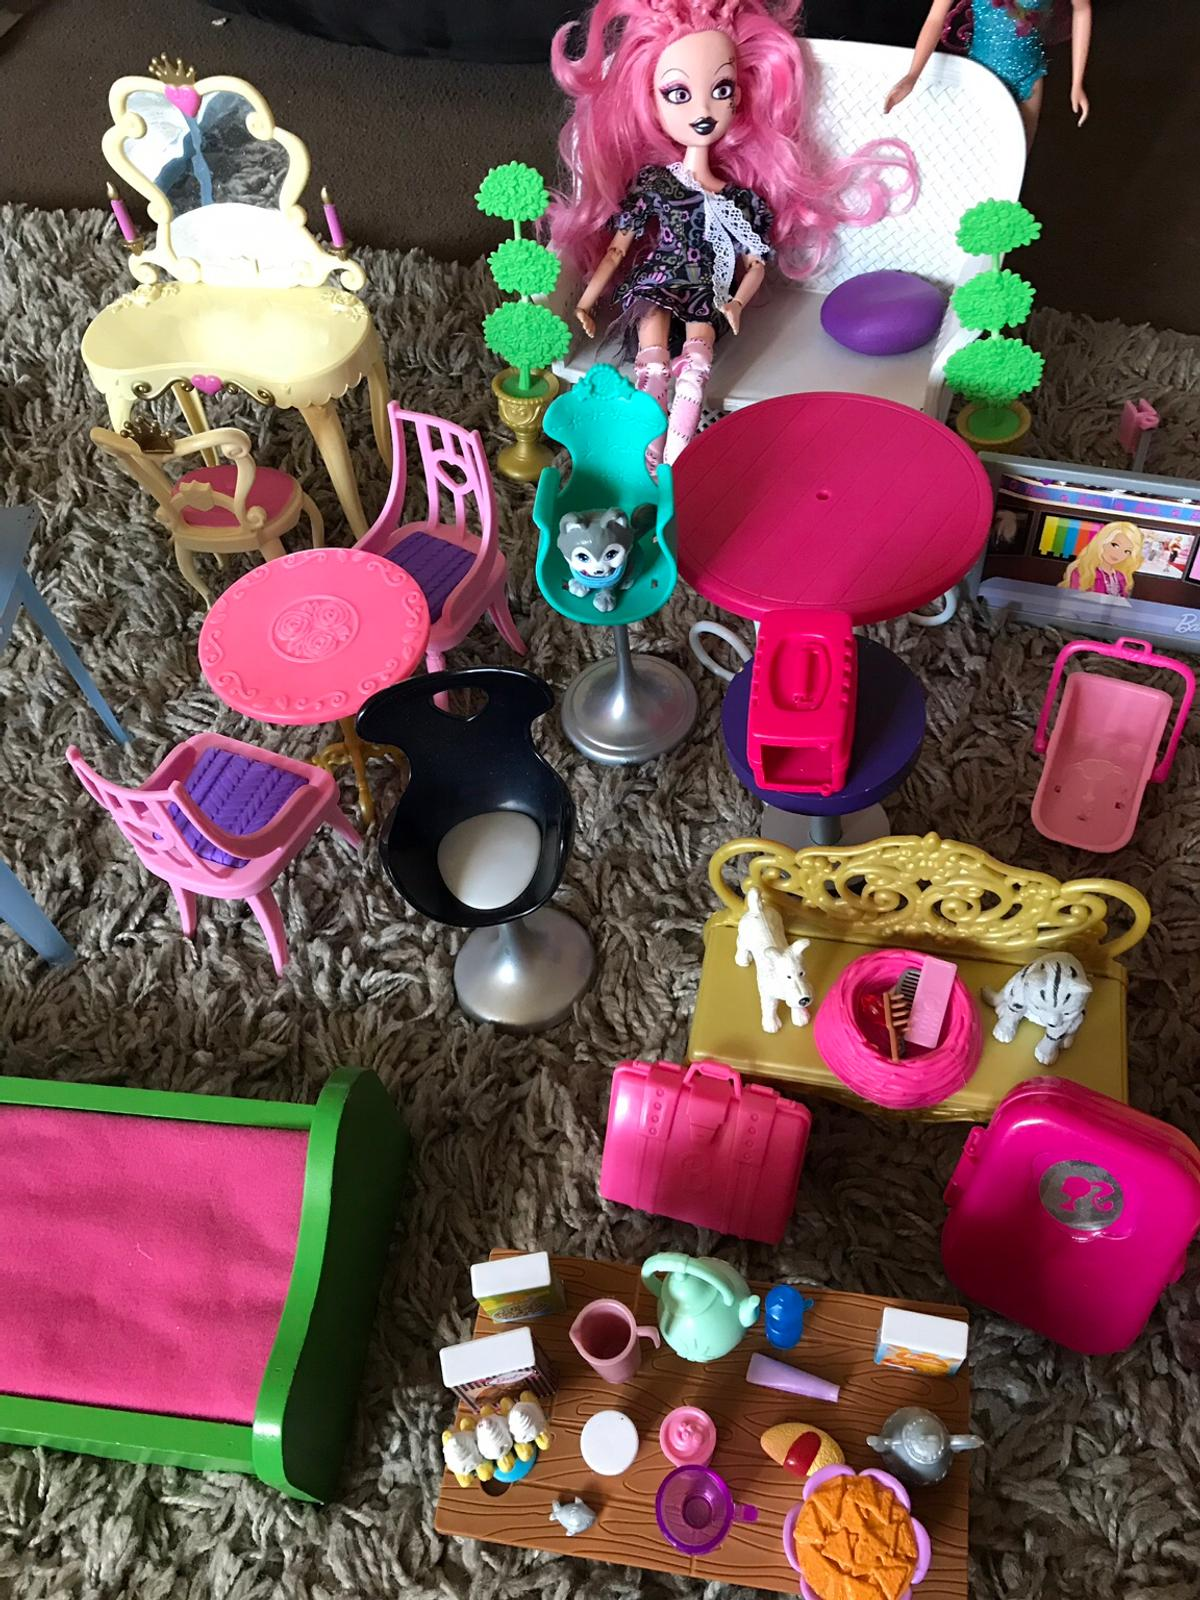 Stupendous Barbie Doll Furniture Job Lot Pdpeps Interior Chair Design Pdpepsorg